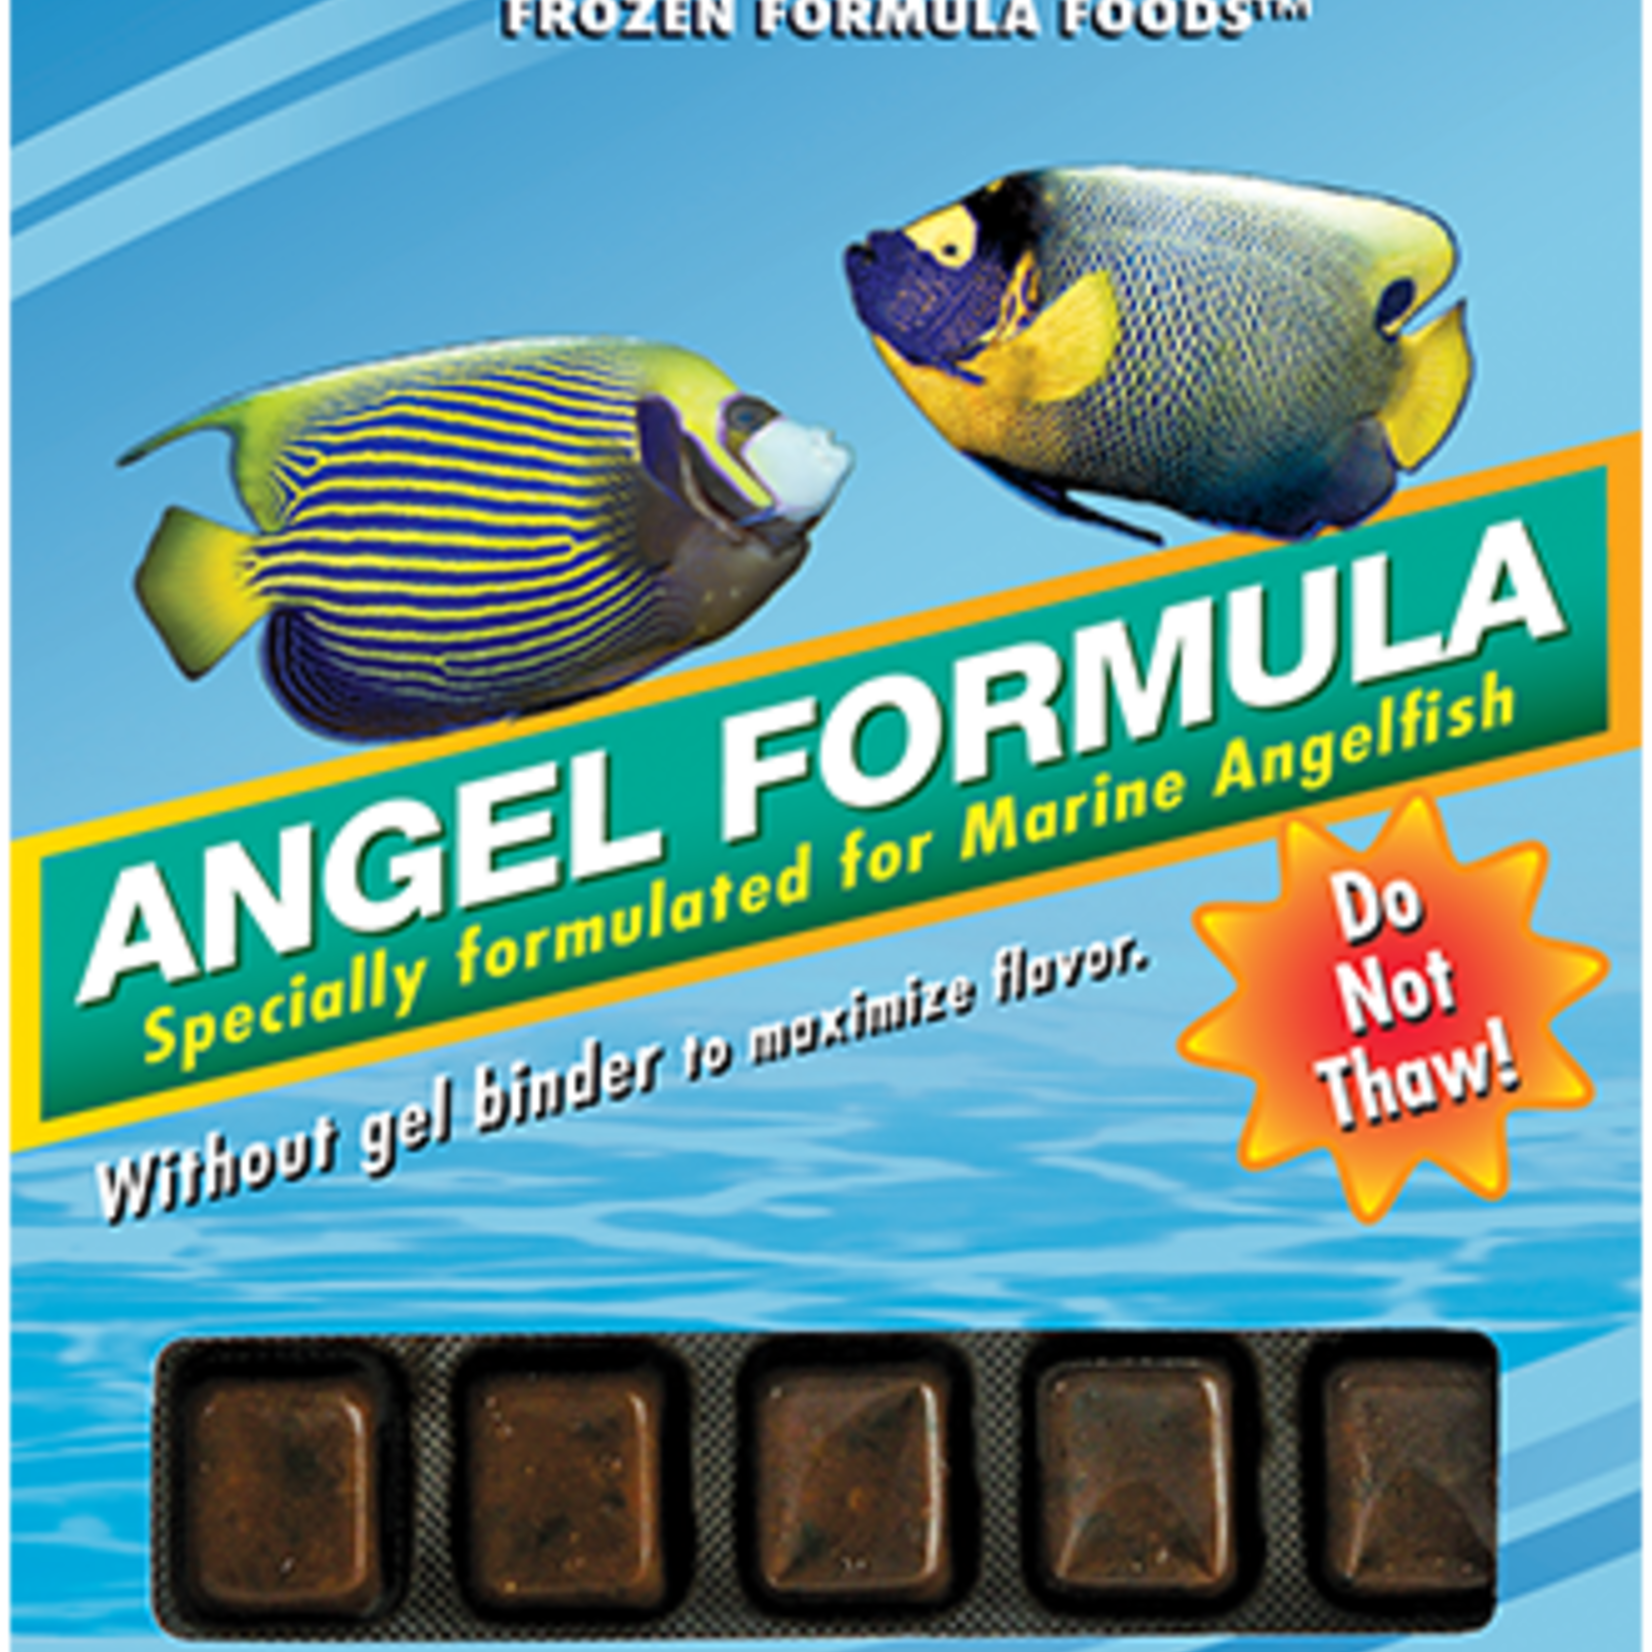 Ocean Nutrition Angel Formula - 100gr